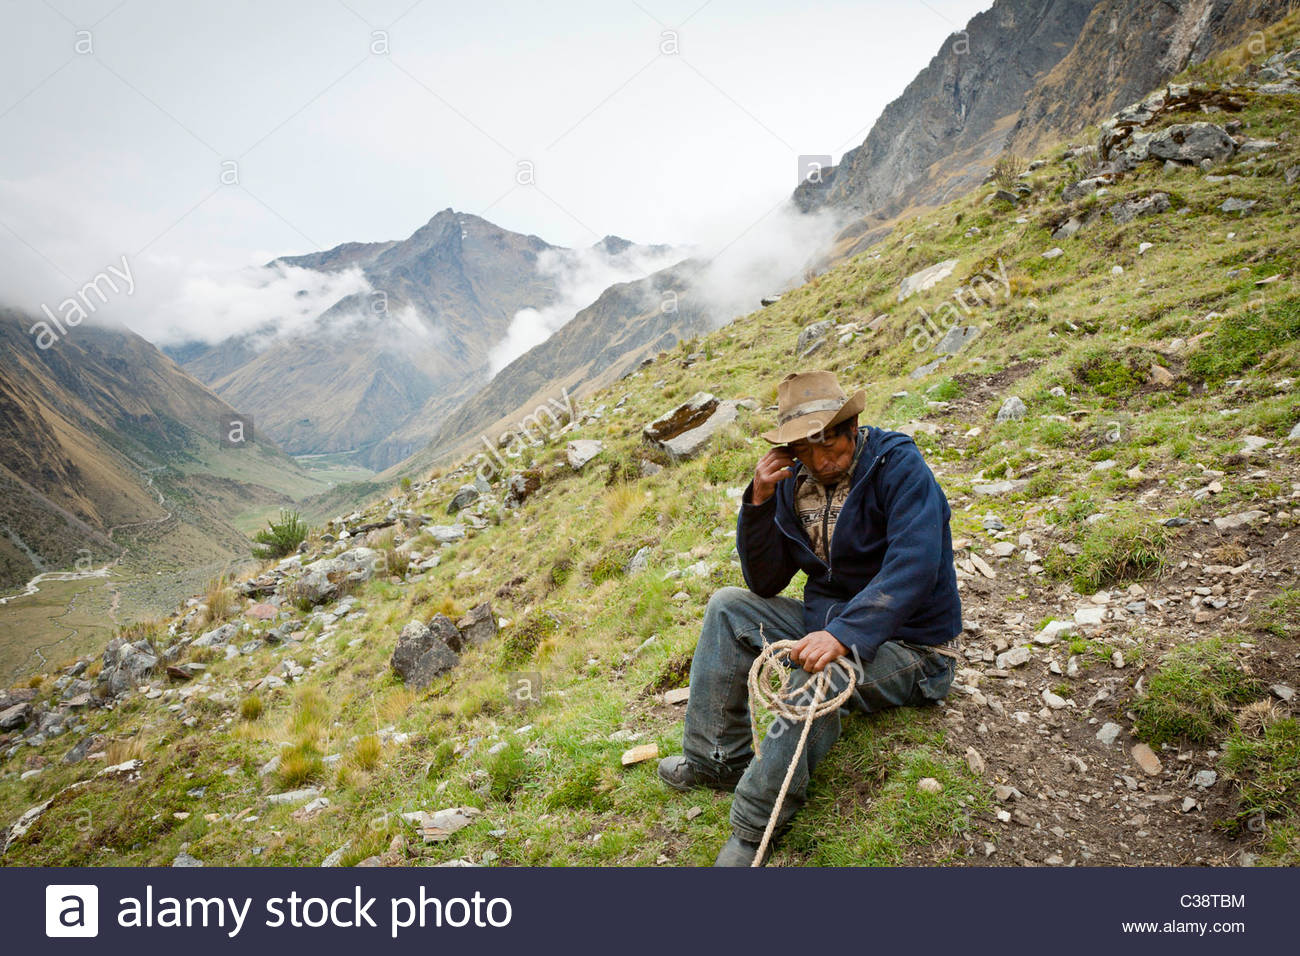 Local man working as a guide and mule-driver on the ascent to Salkantay Pass along the Salkantay Tail, Peru, South - Stock Image